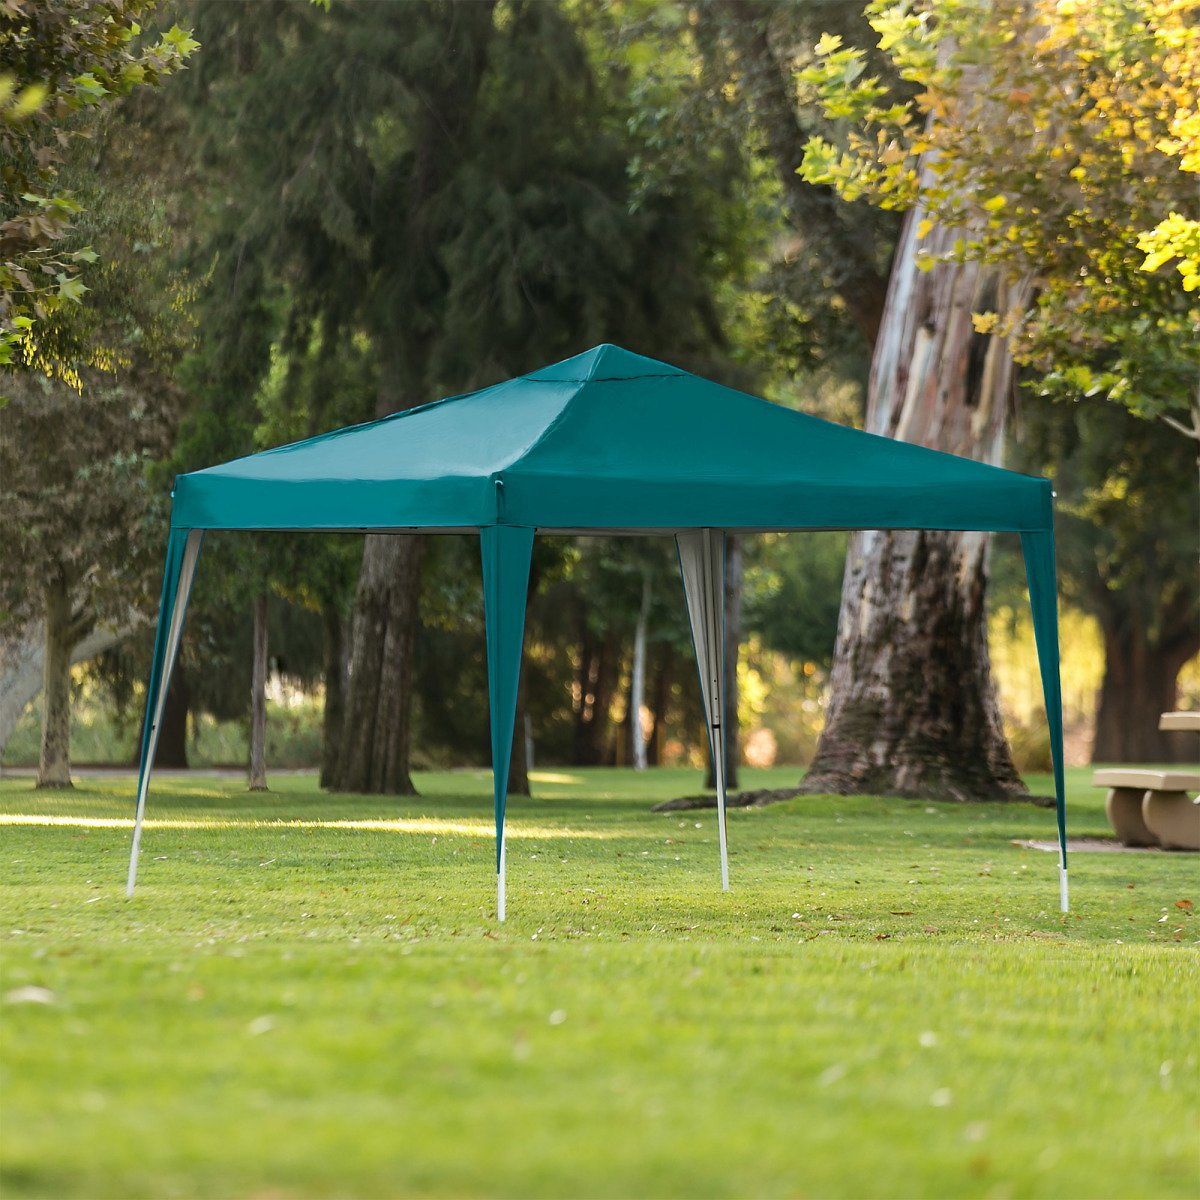 Best Choice Products Outdoor Portable Adjustable Instant Pop Up Gazebo Canopy Tent w/ Carrying Bag, 10x10ft - Green